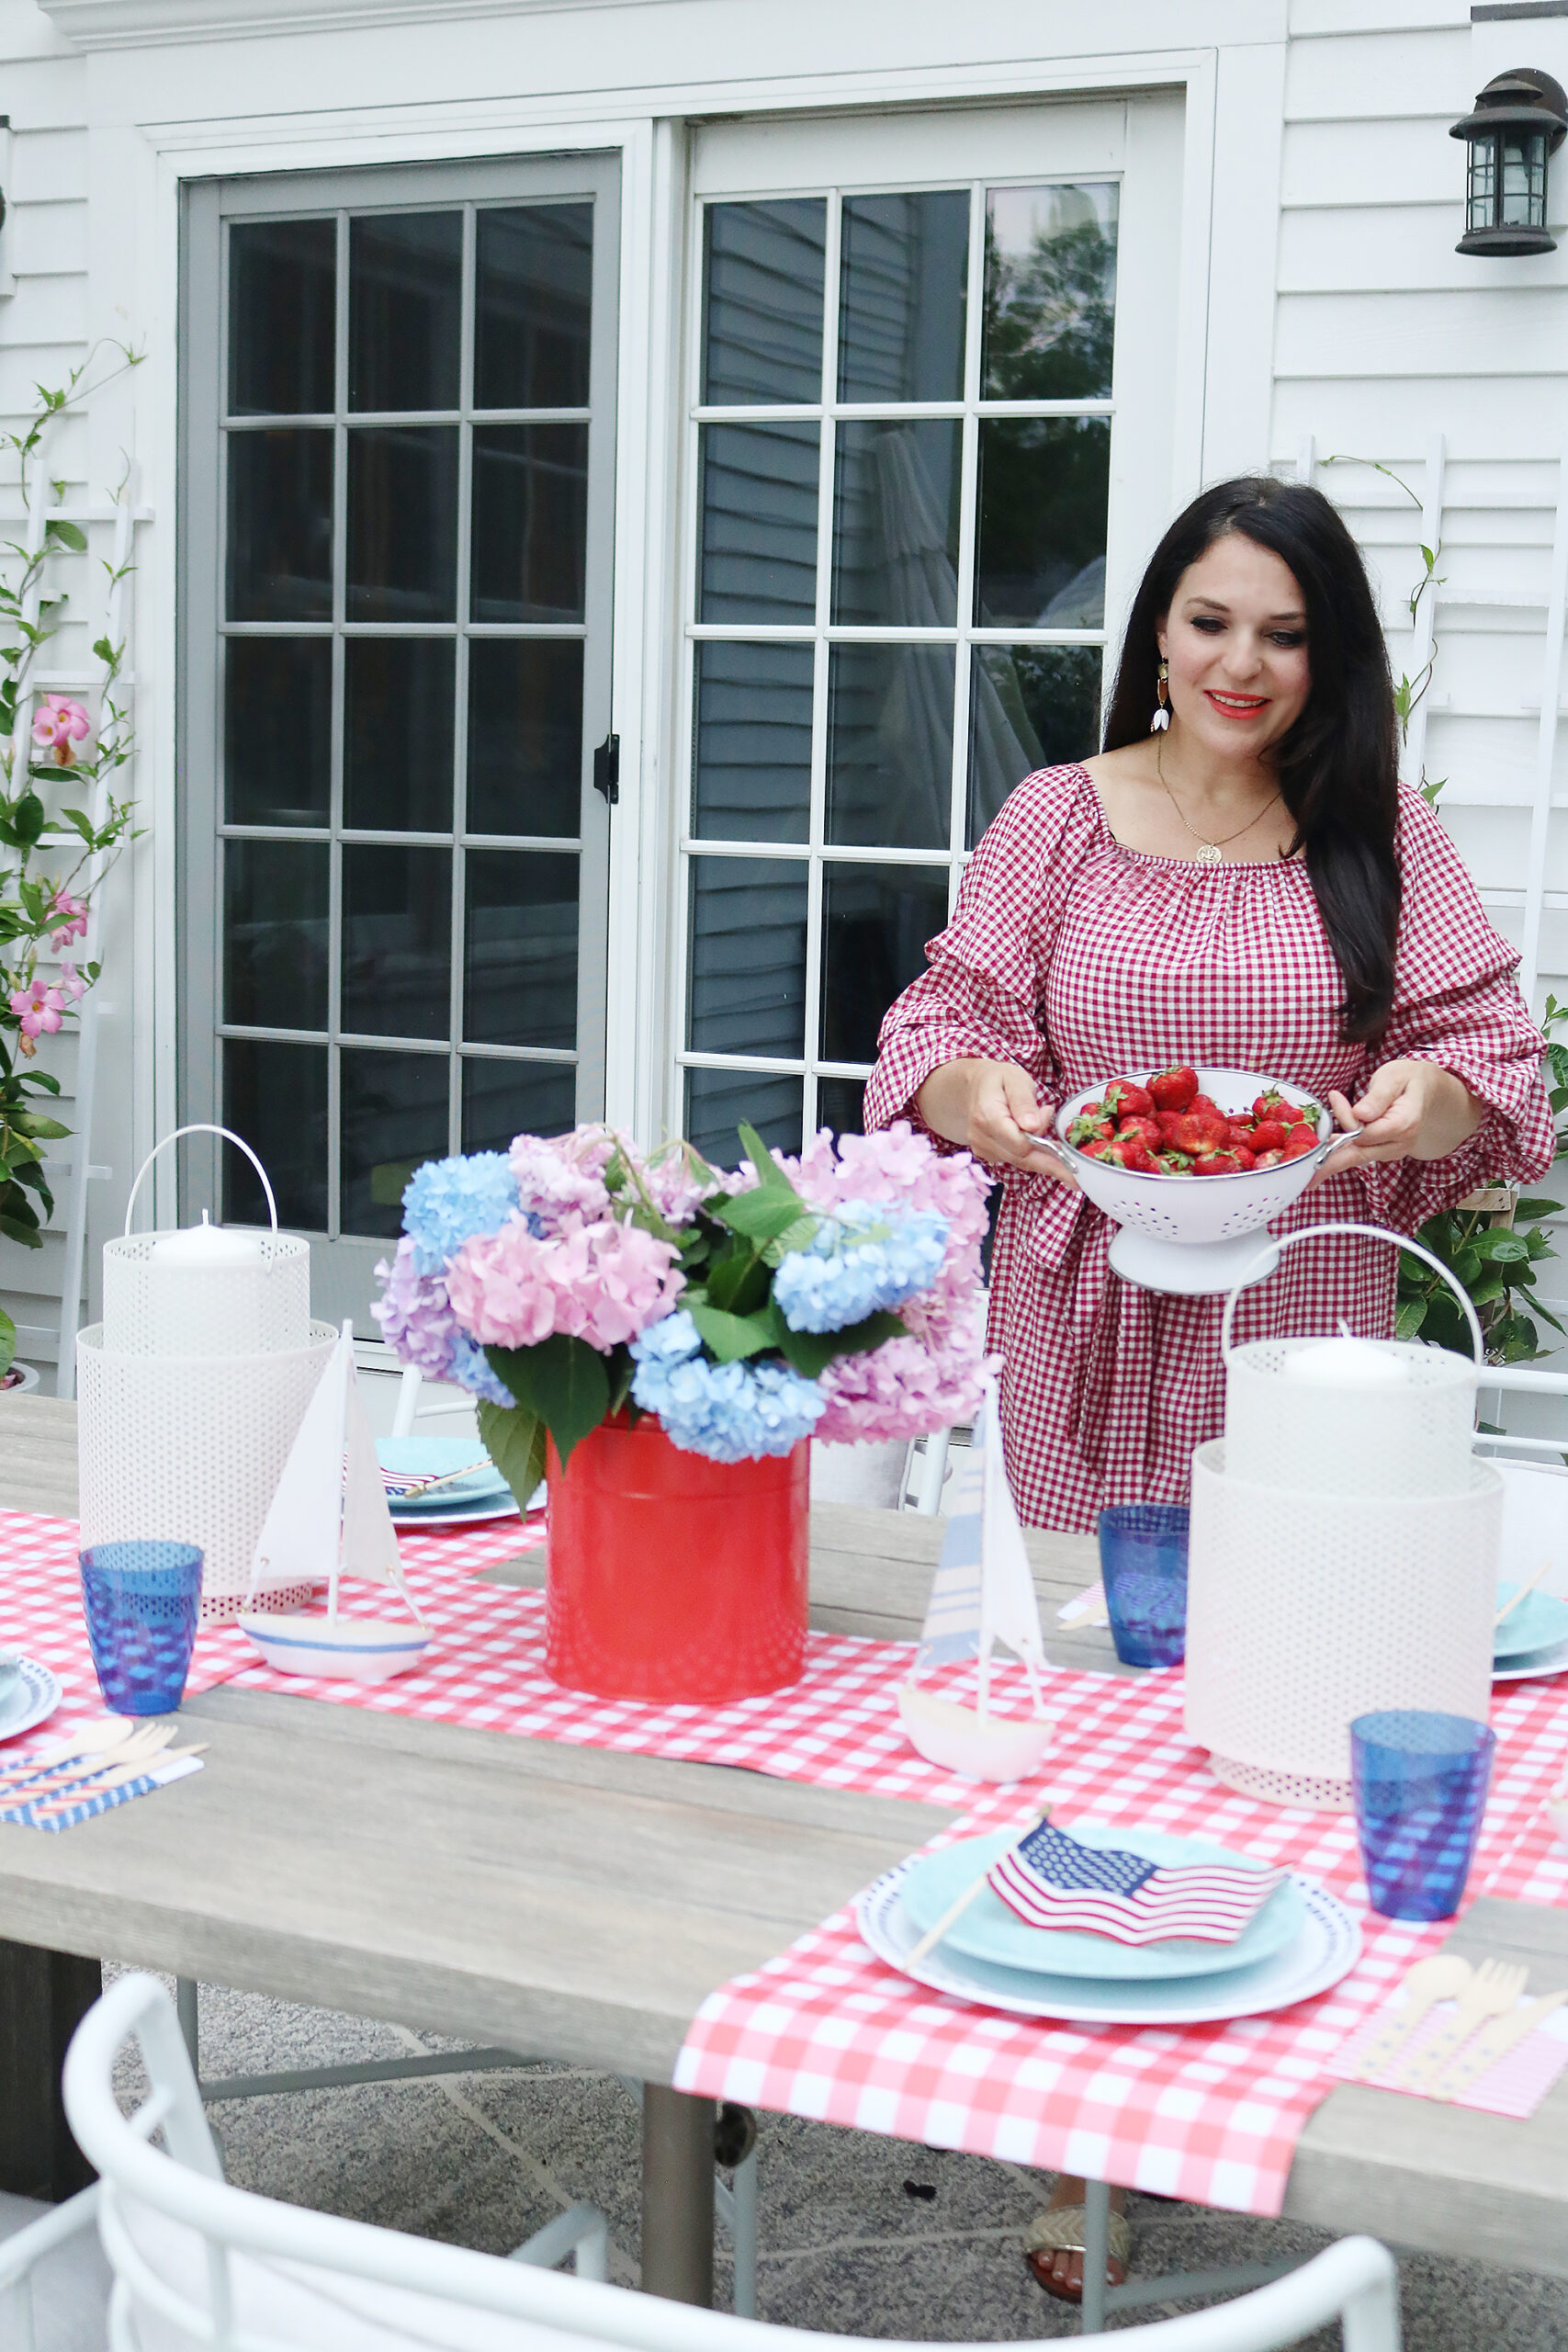 This year host a 4th of July barbecue party and sharing simple budget-friendly decorating tips, 4th of July outfit, red gingham dress, 4th of July entertaining tips, american flag decorations, backyard party, 4th of july tablescape  || Darling Darleen Top CT Lifestyle Blogger #4thofjuly #4thofjulyoutfit